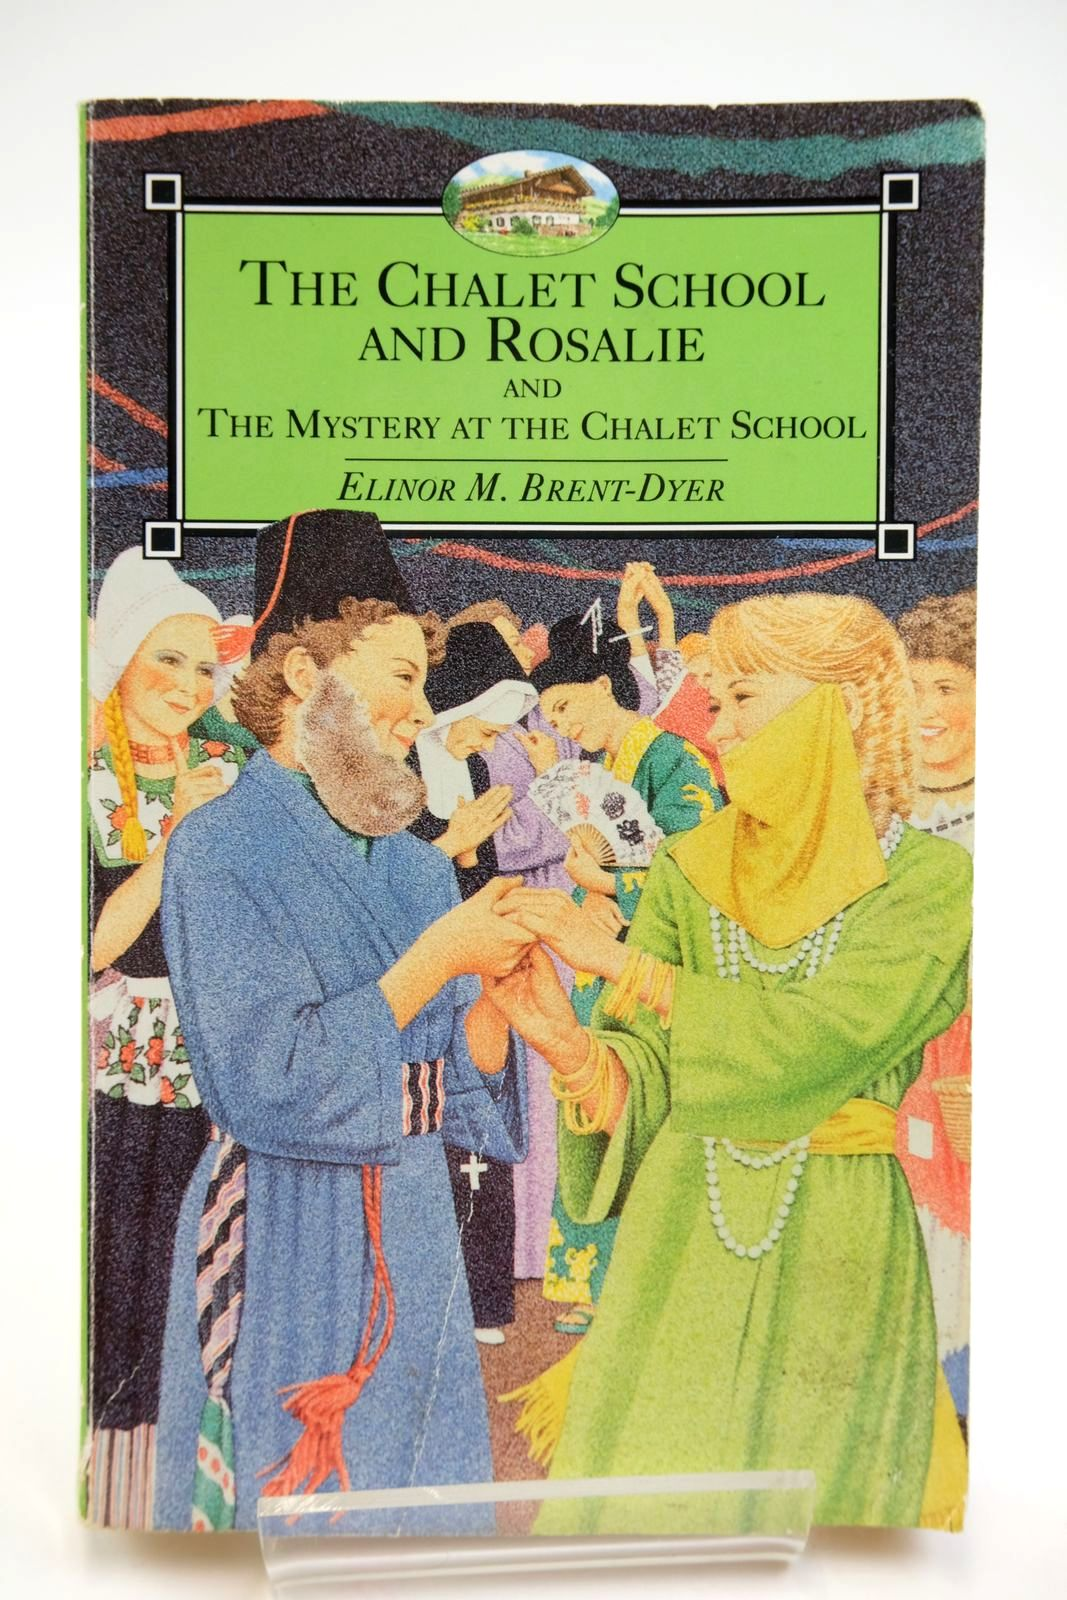 Photo of THE CHALET SCHOOL AND ROSALIE AND THE MYSTERY AT THE CHALET SCHOOL- Stock Number: 2133494